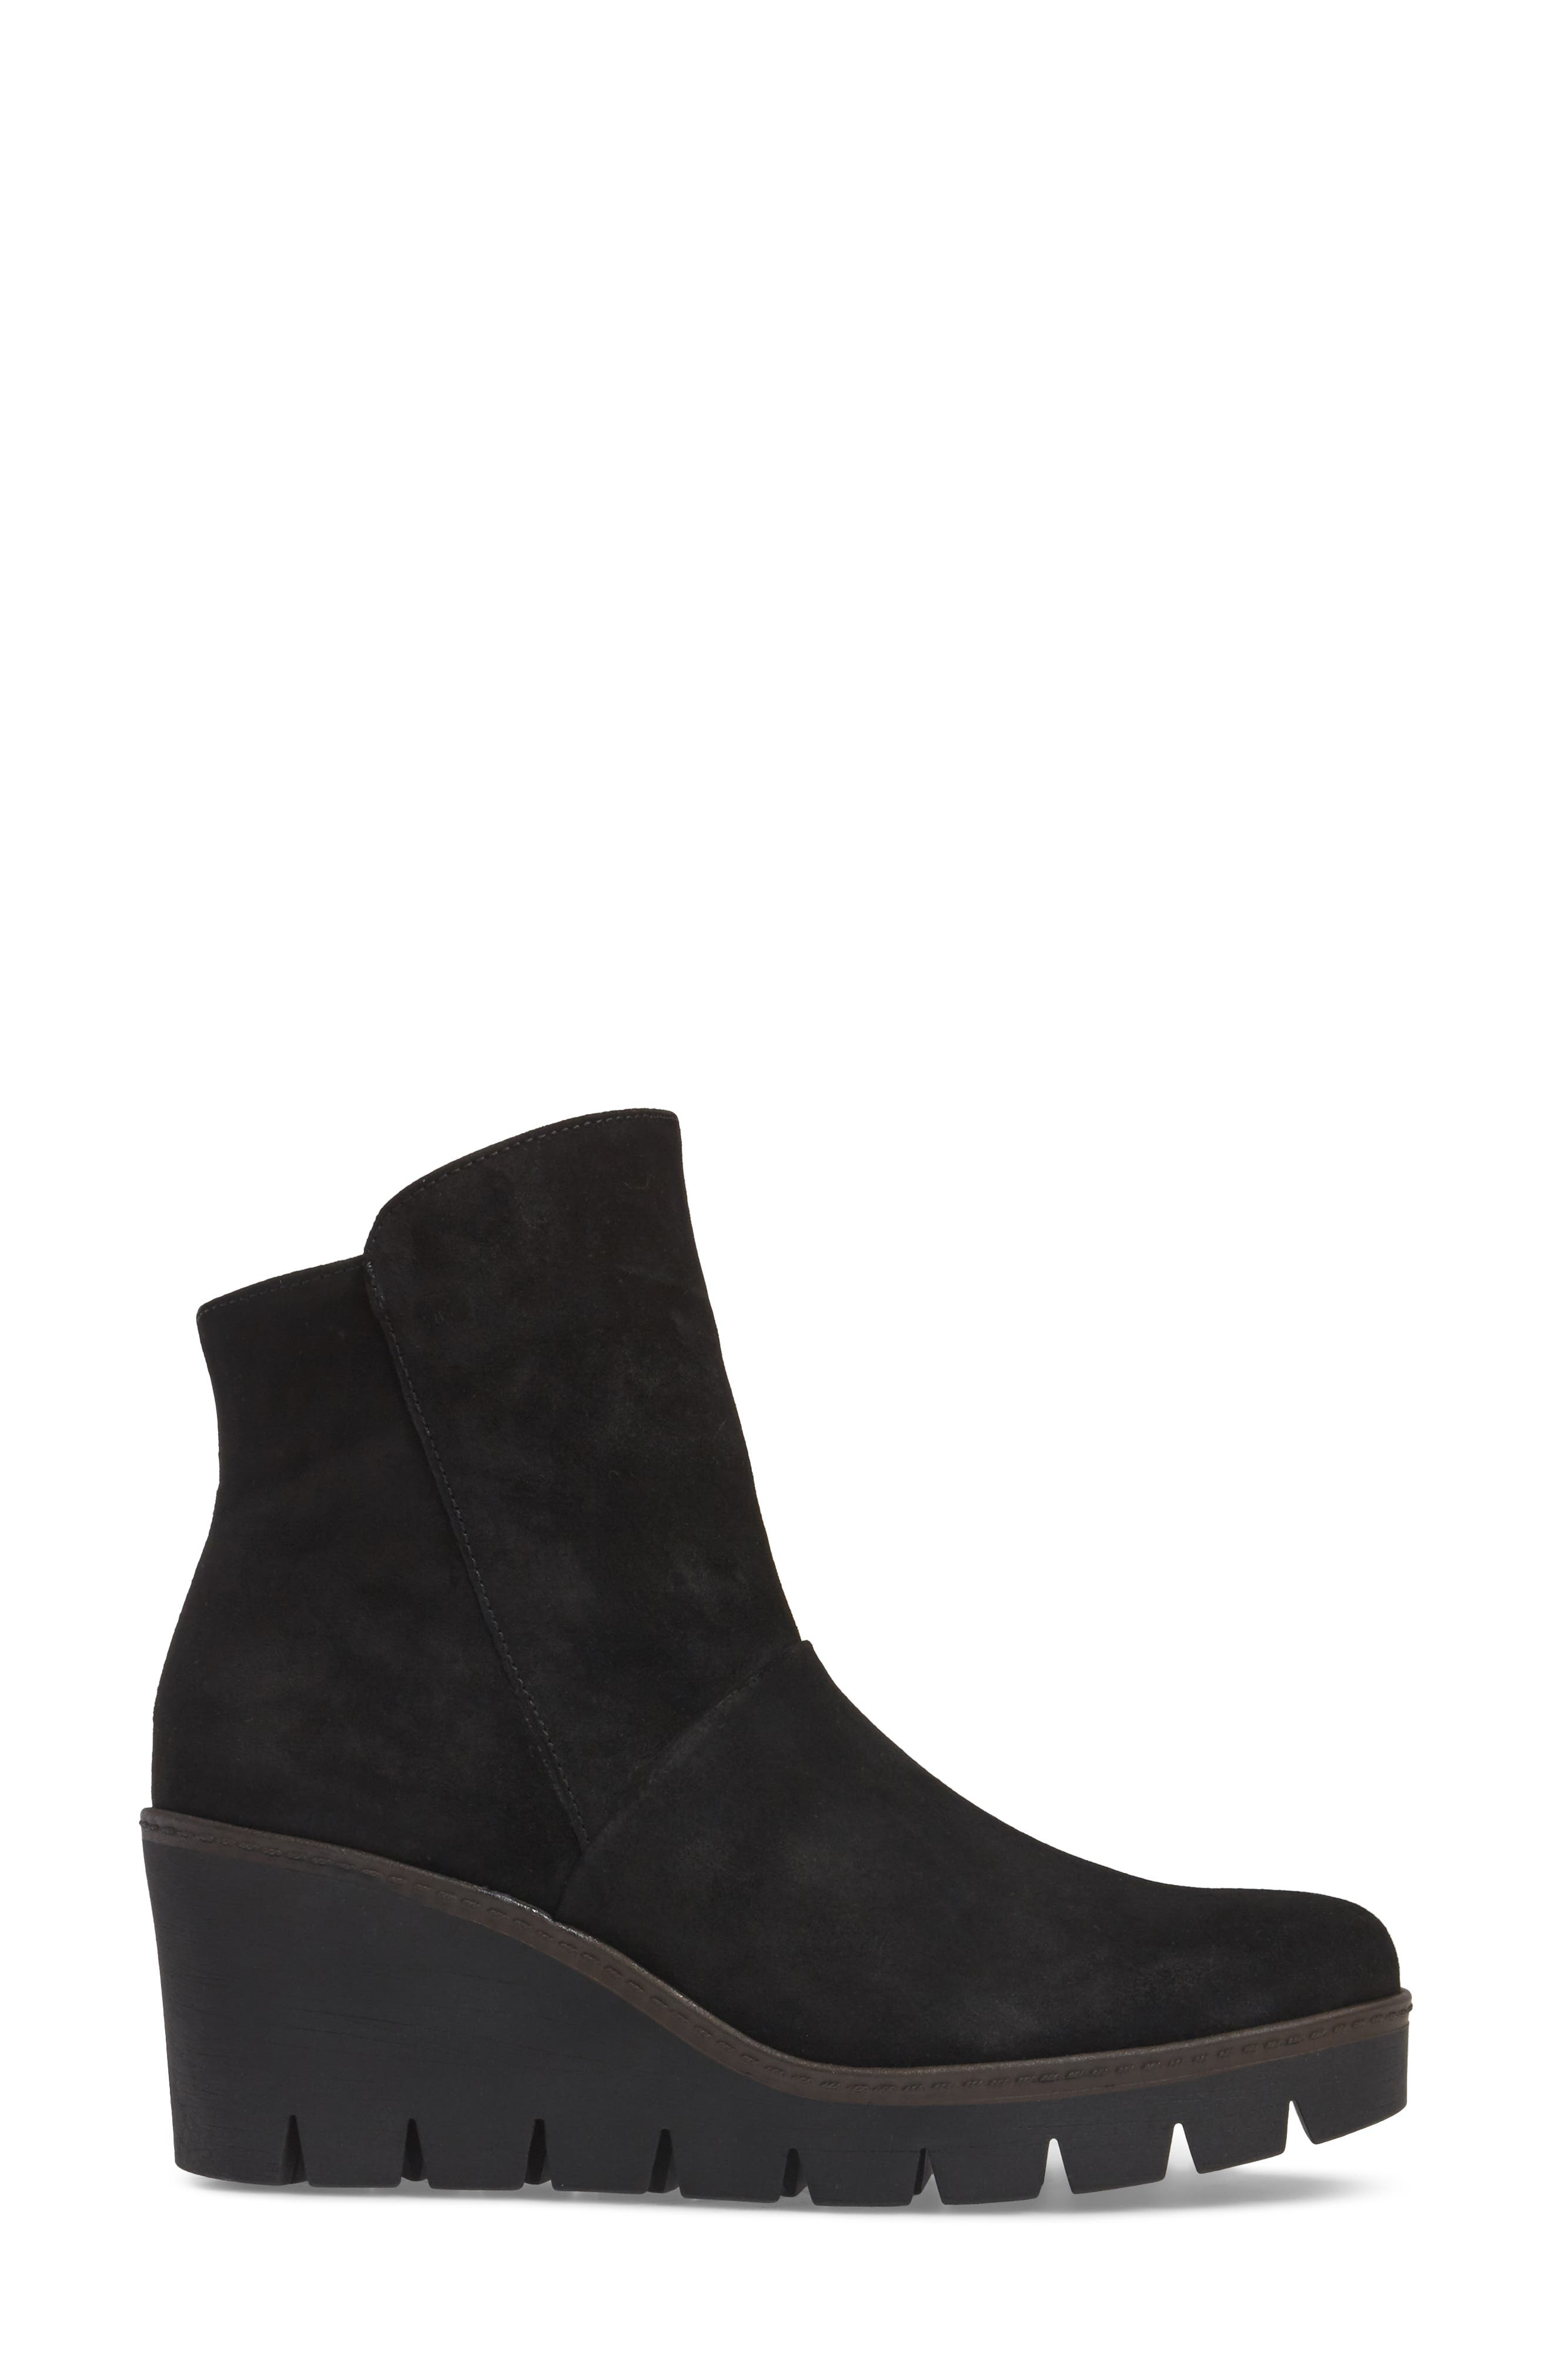 Wedge Bootie,                             Alternate thumbnail 3, color,                             BLACK SUEDE